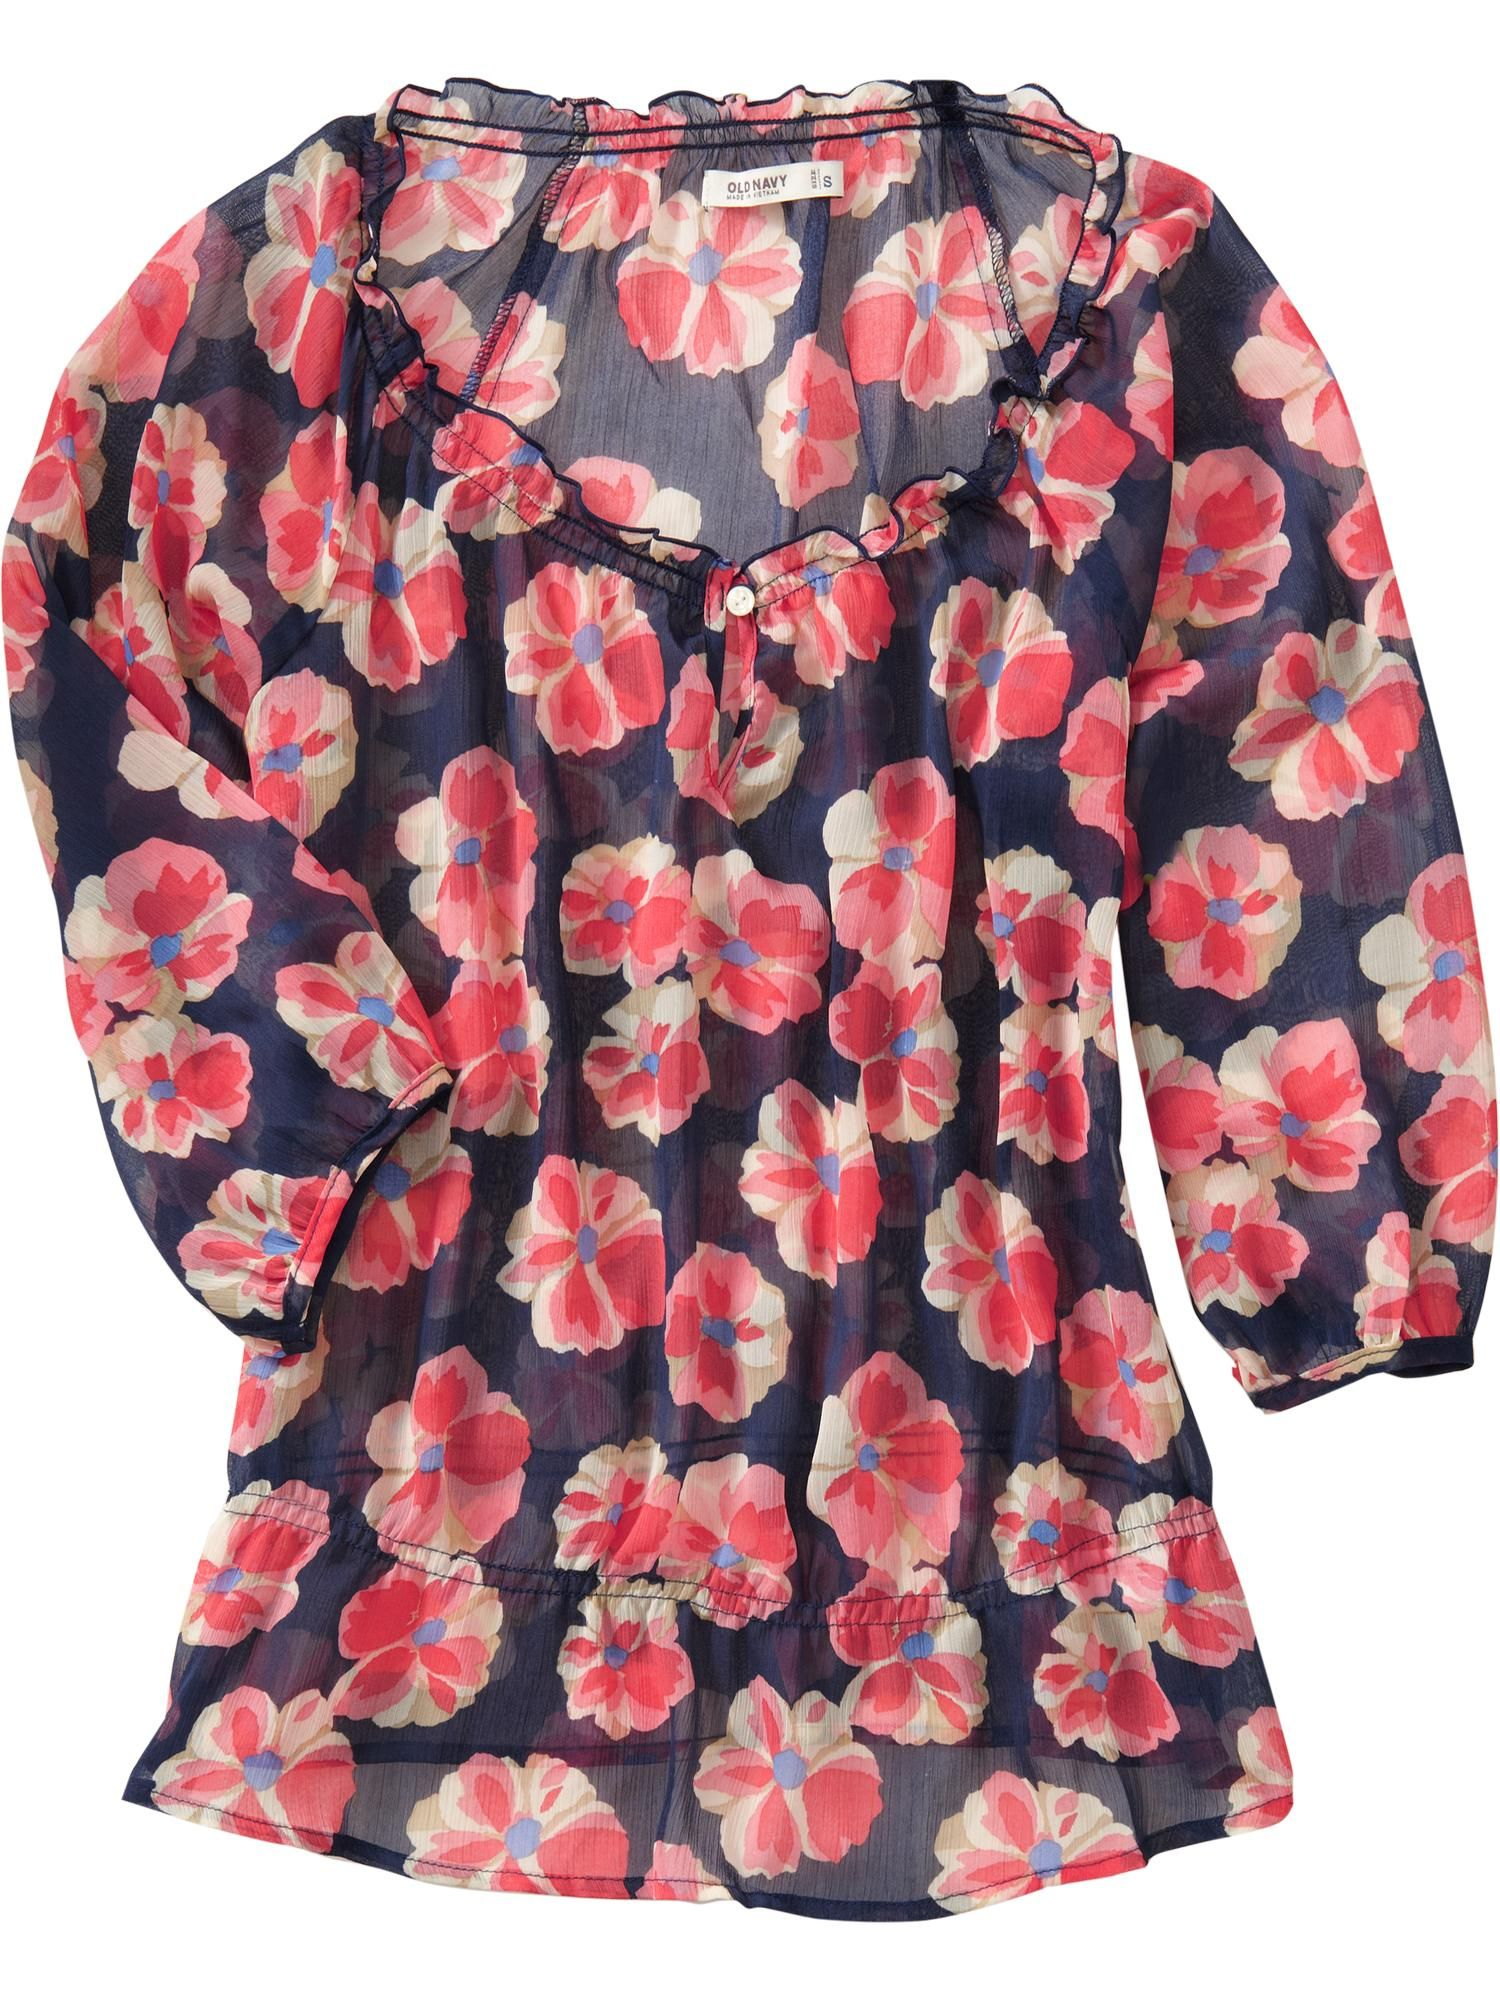 floral-print chiffon blouses from Old Navy   My Style   Pinterest